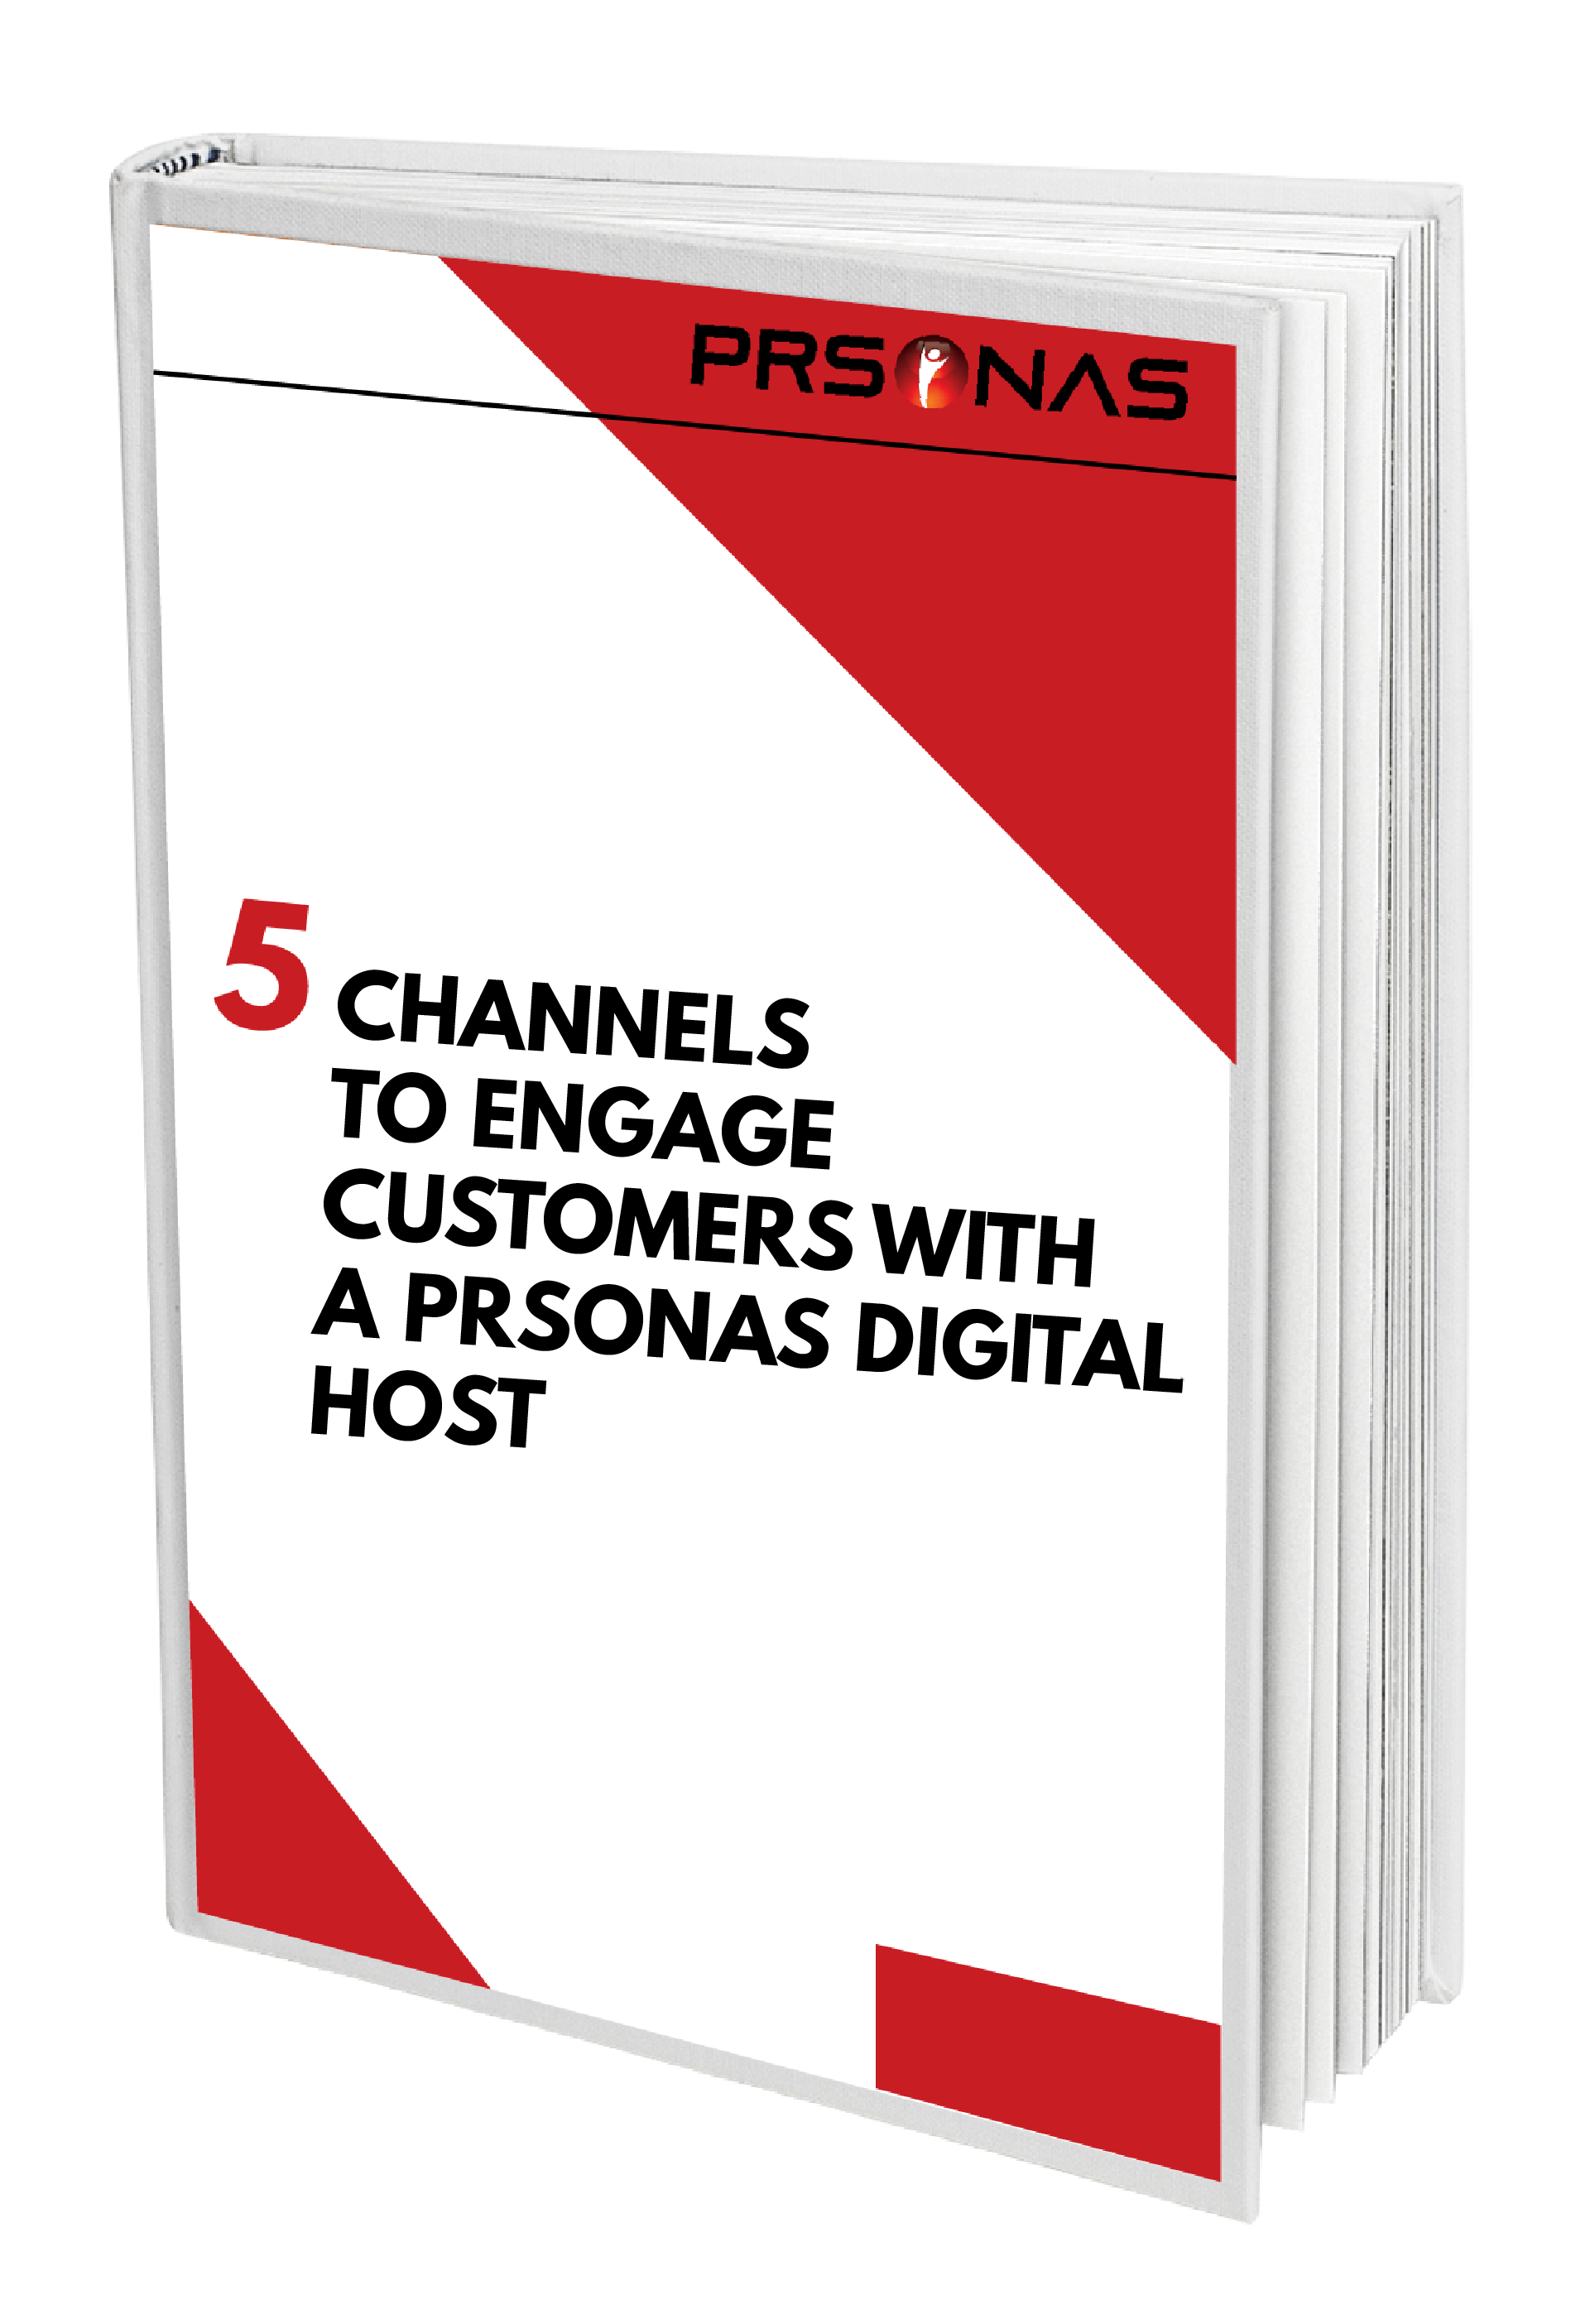 5 Channels for PRSONAS Digital Host ebook.png